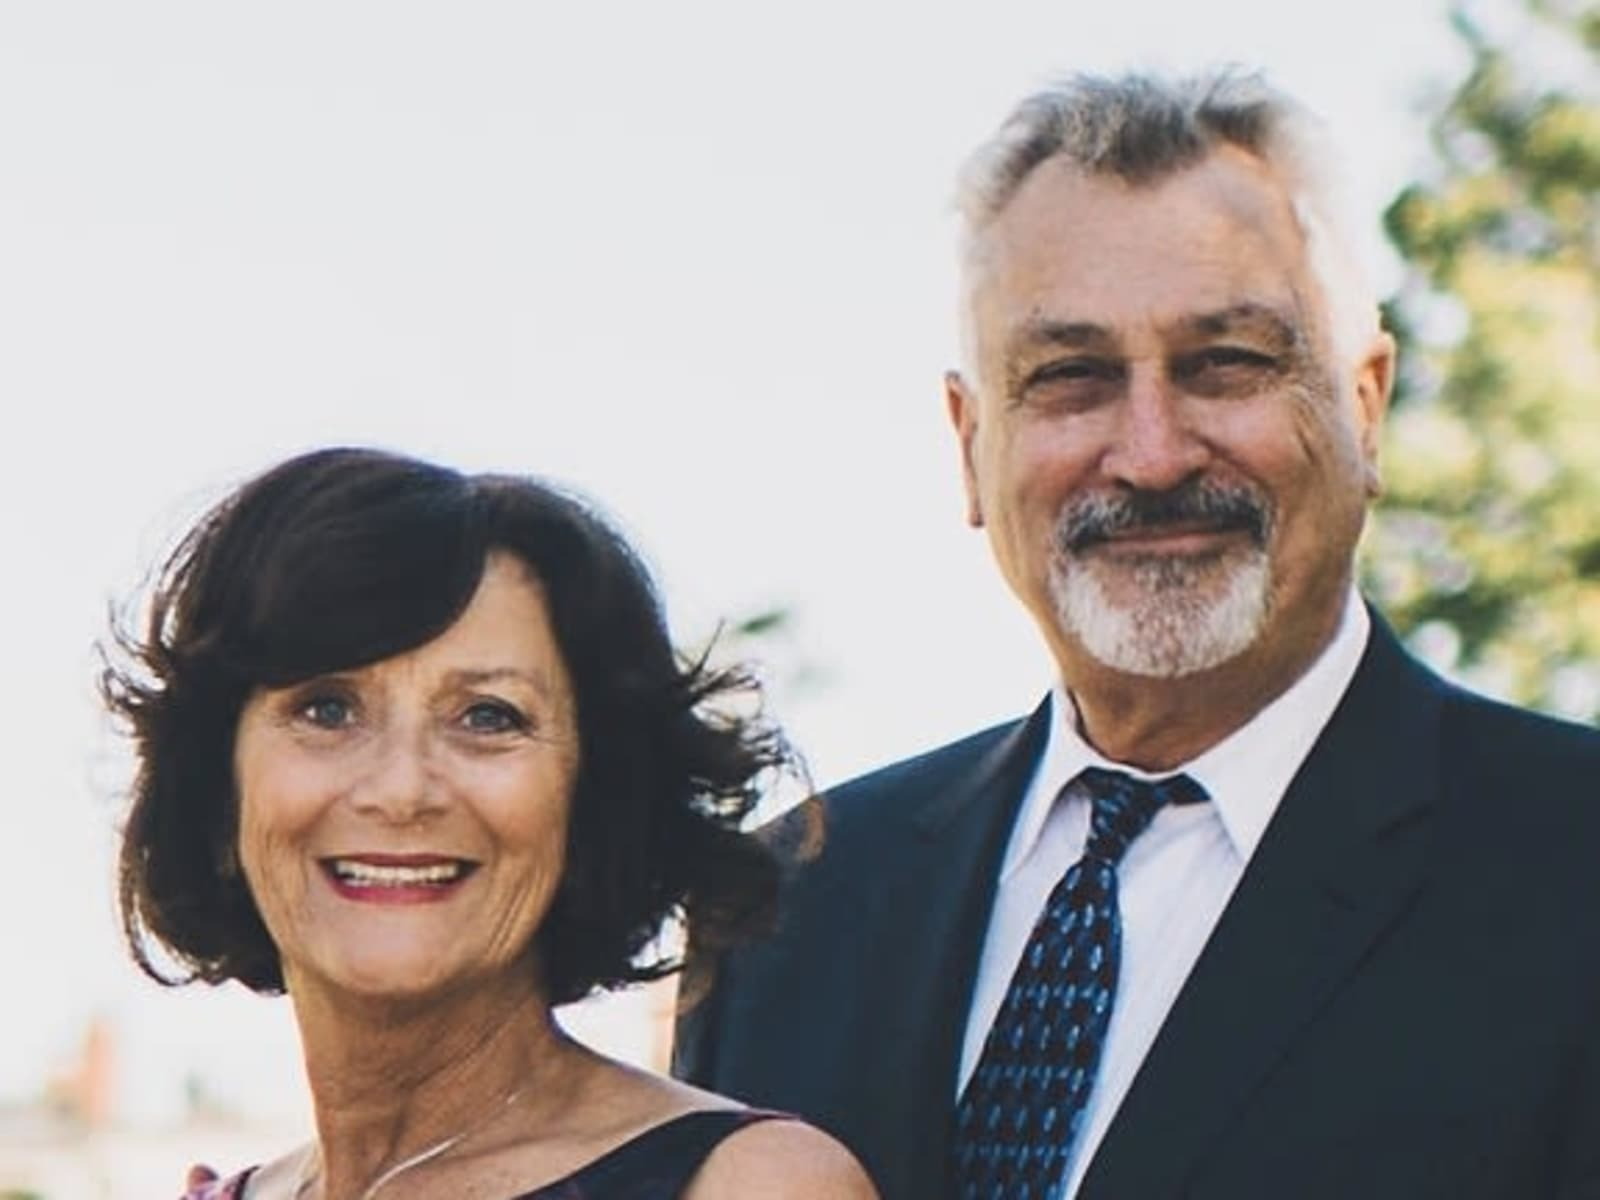 Jane & Brian from Santa Monica, California, United States